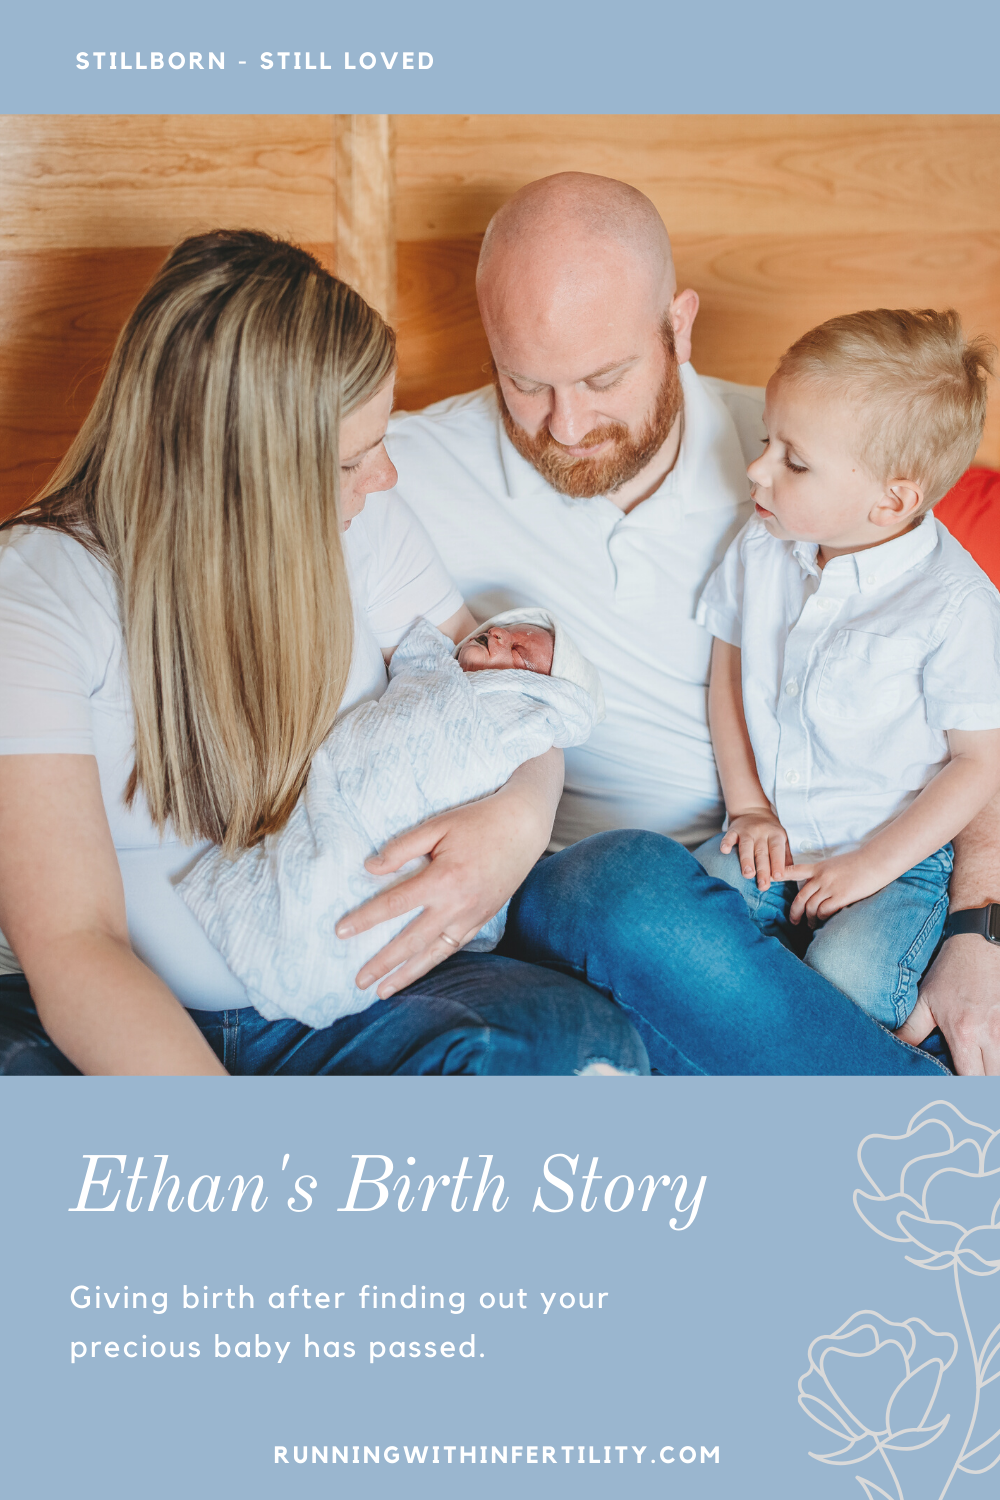 Ethans birth story pinterest photo